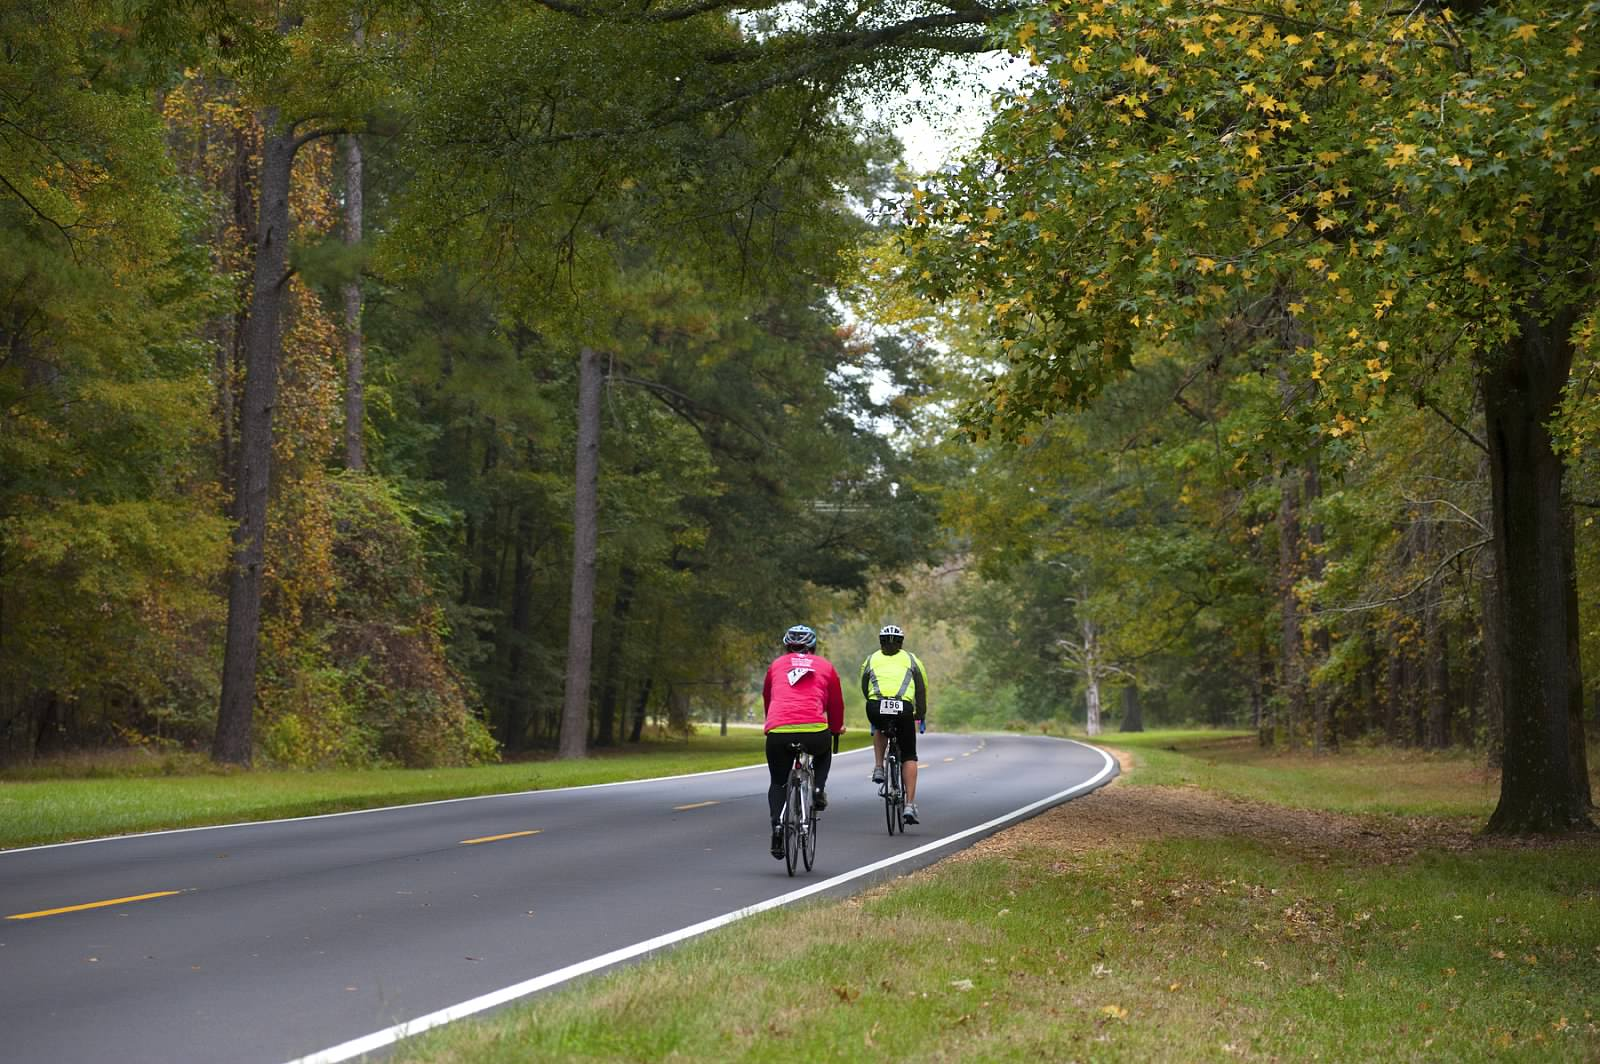 Two people riding bikes on the Natchez Trace parkway